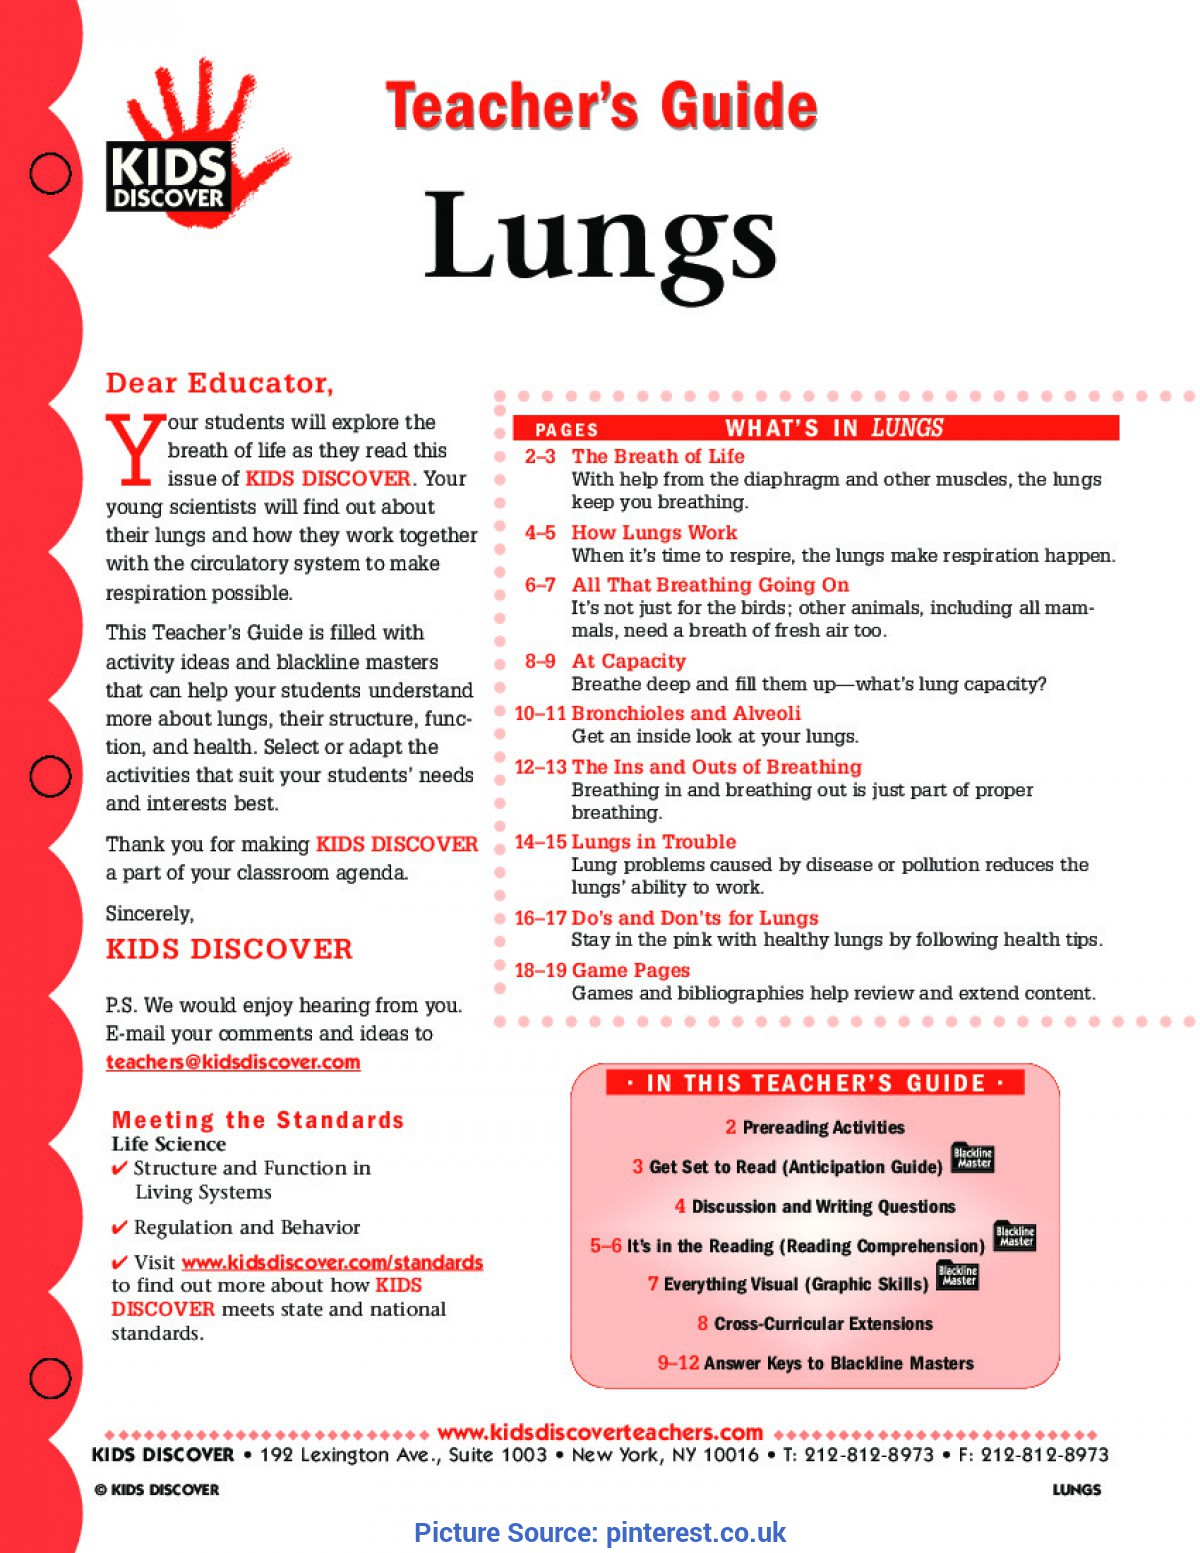 Typical Lesson Plan In Science Respiratory System This Free Lesson Plan For Kids Discover Lungs Will Help You Teac